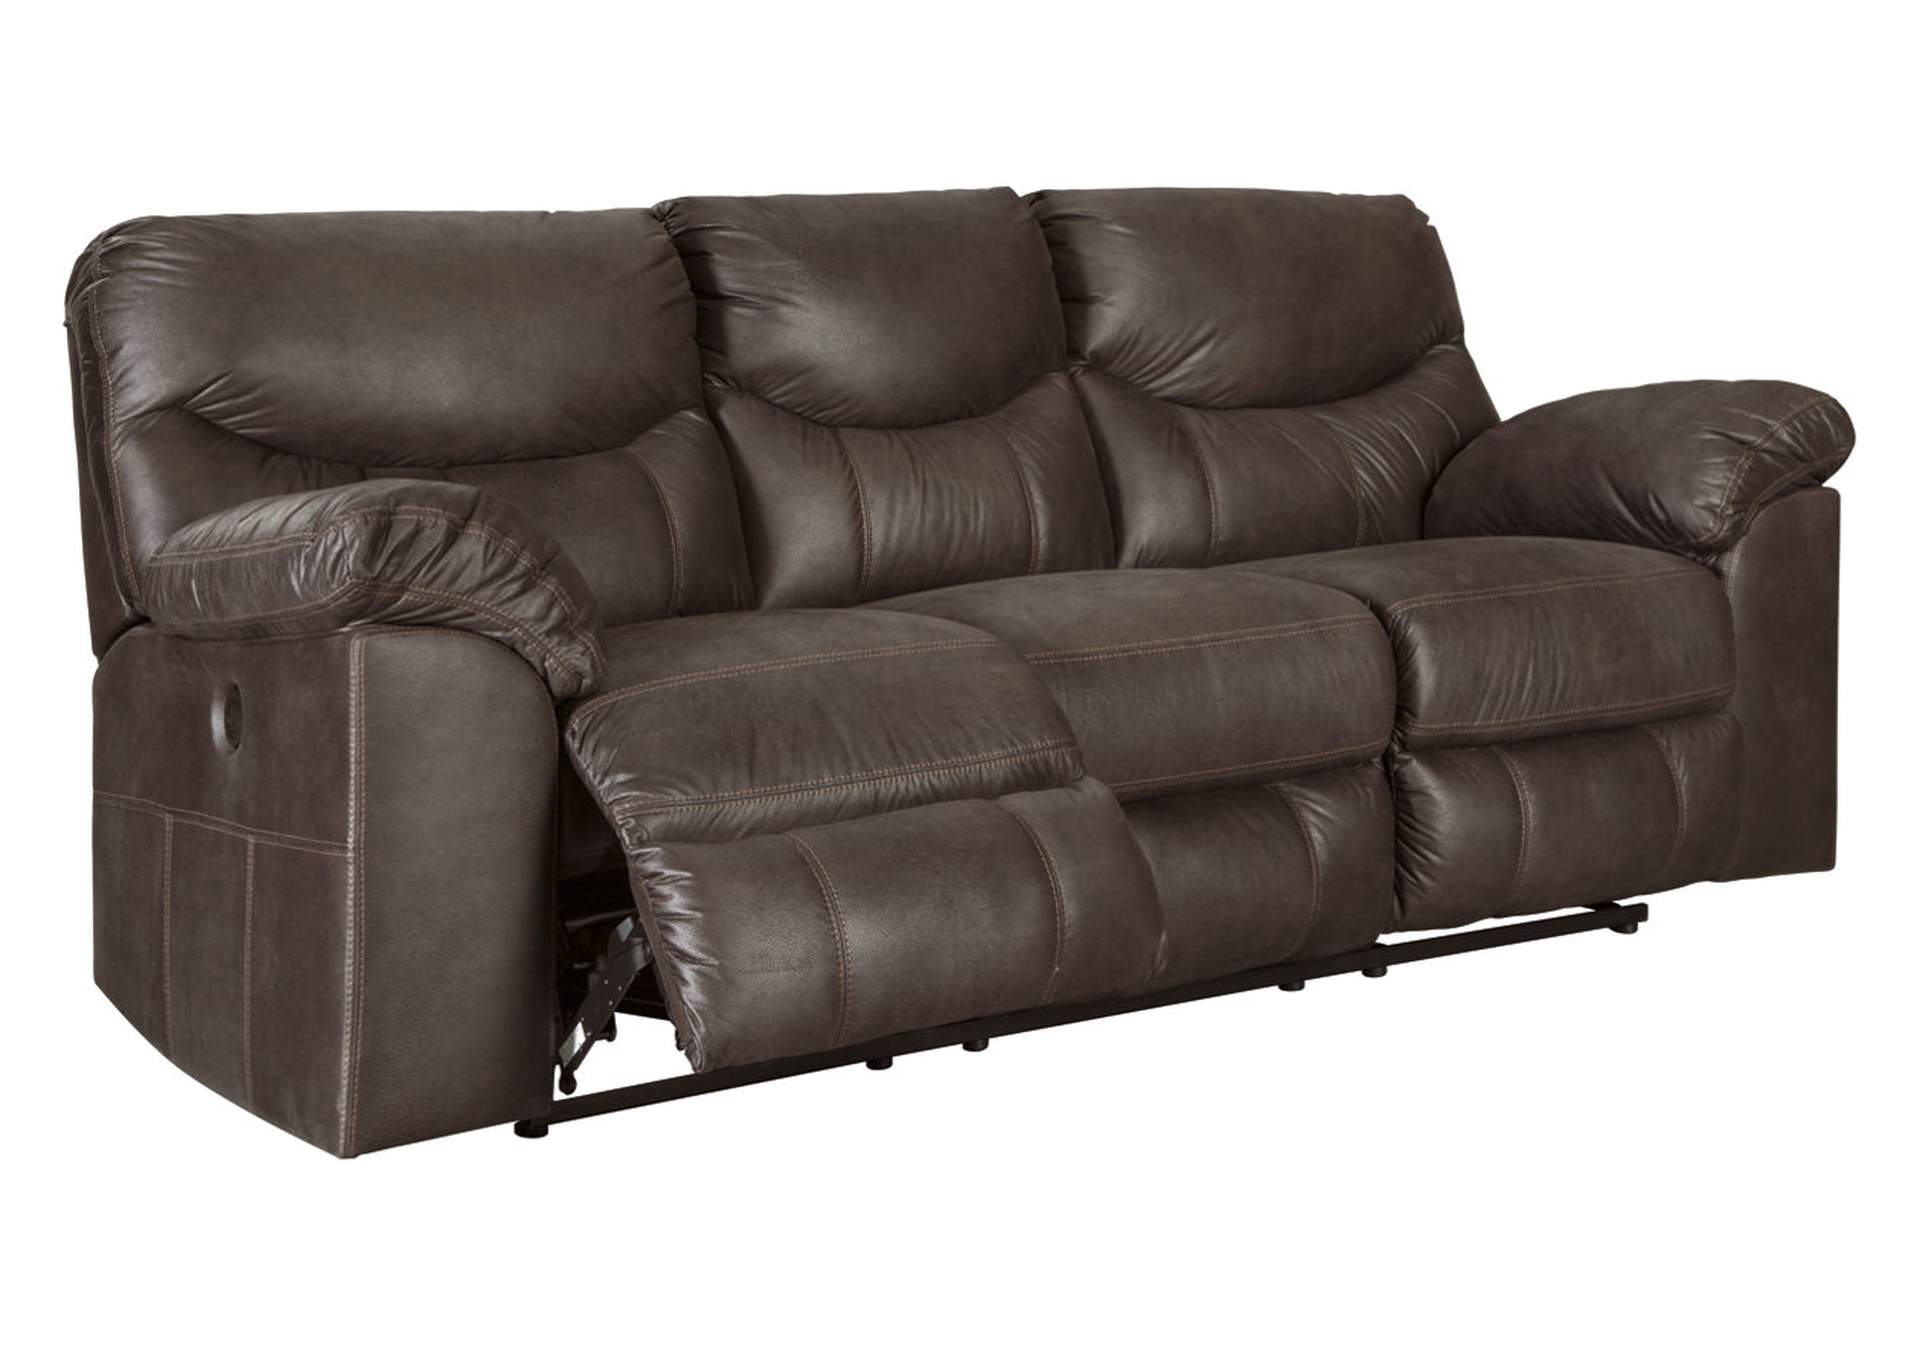 Boxberg Teak Reclining Power Sofa,Signature Design By Ashley